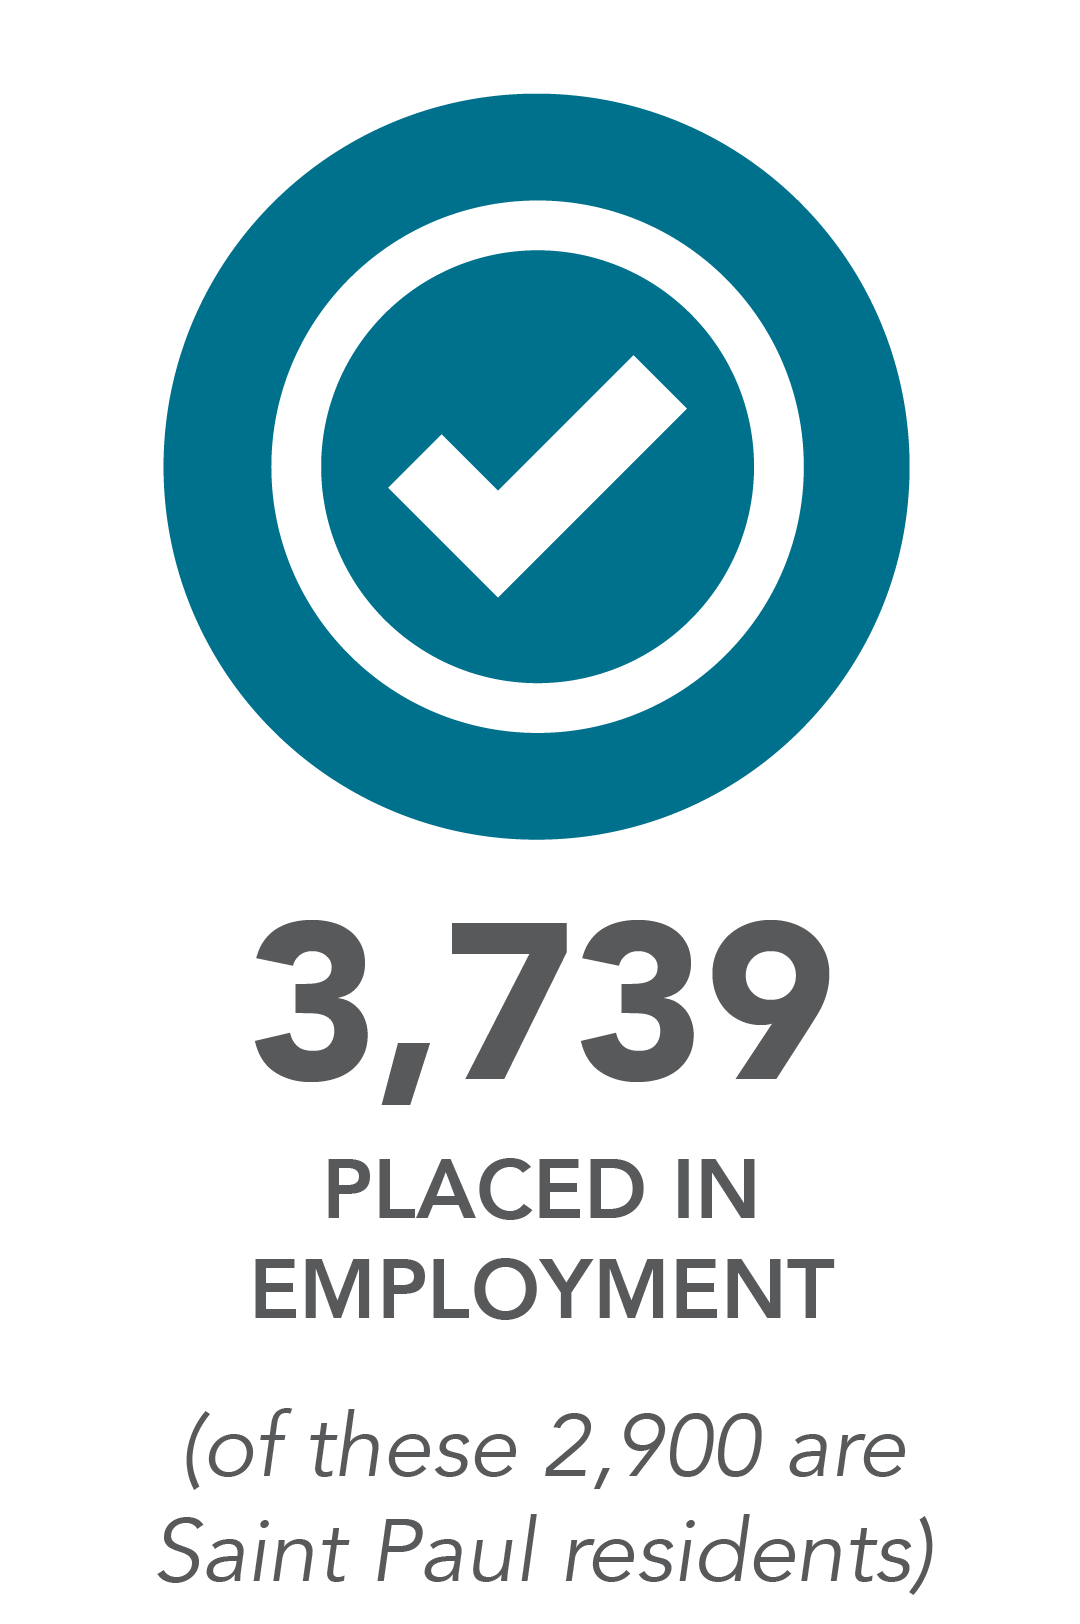 3,739 placed in employment. (of these 2,900 are Saint Paul residents)